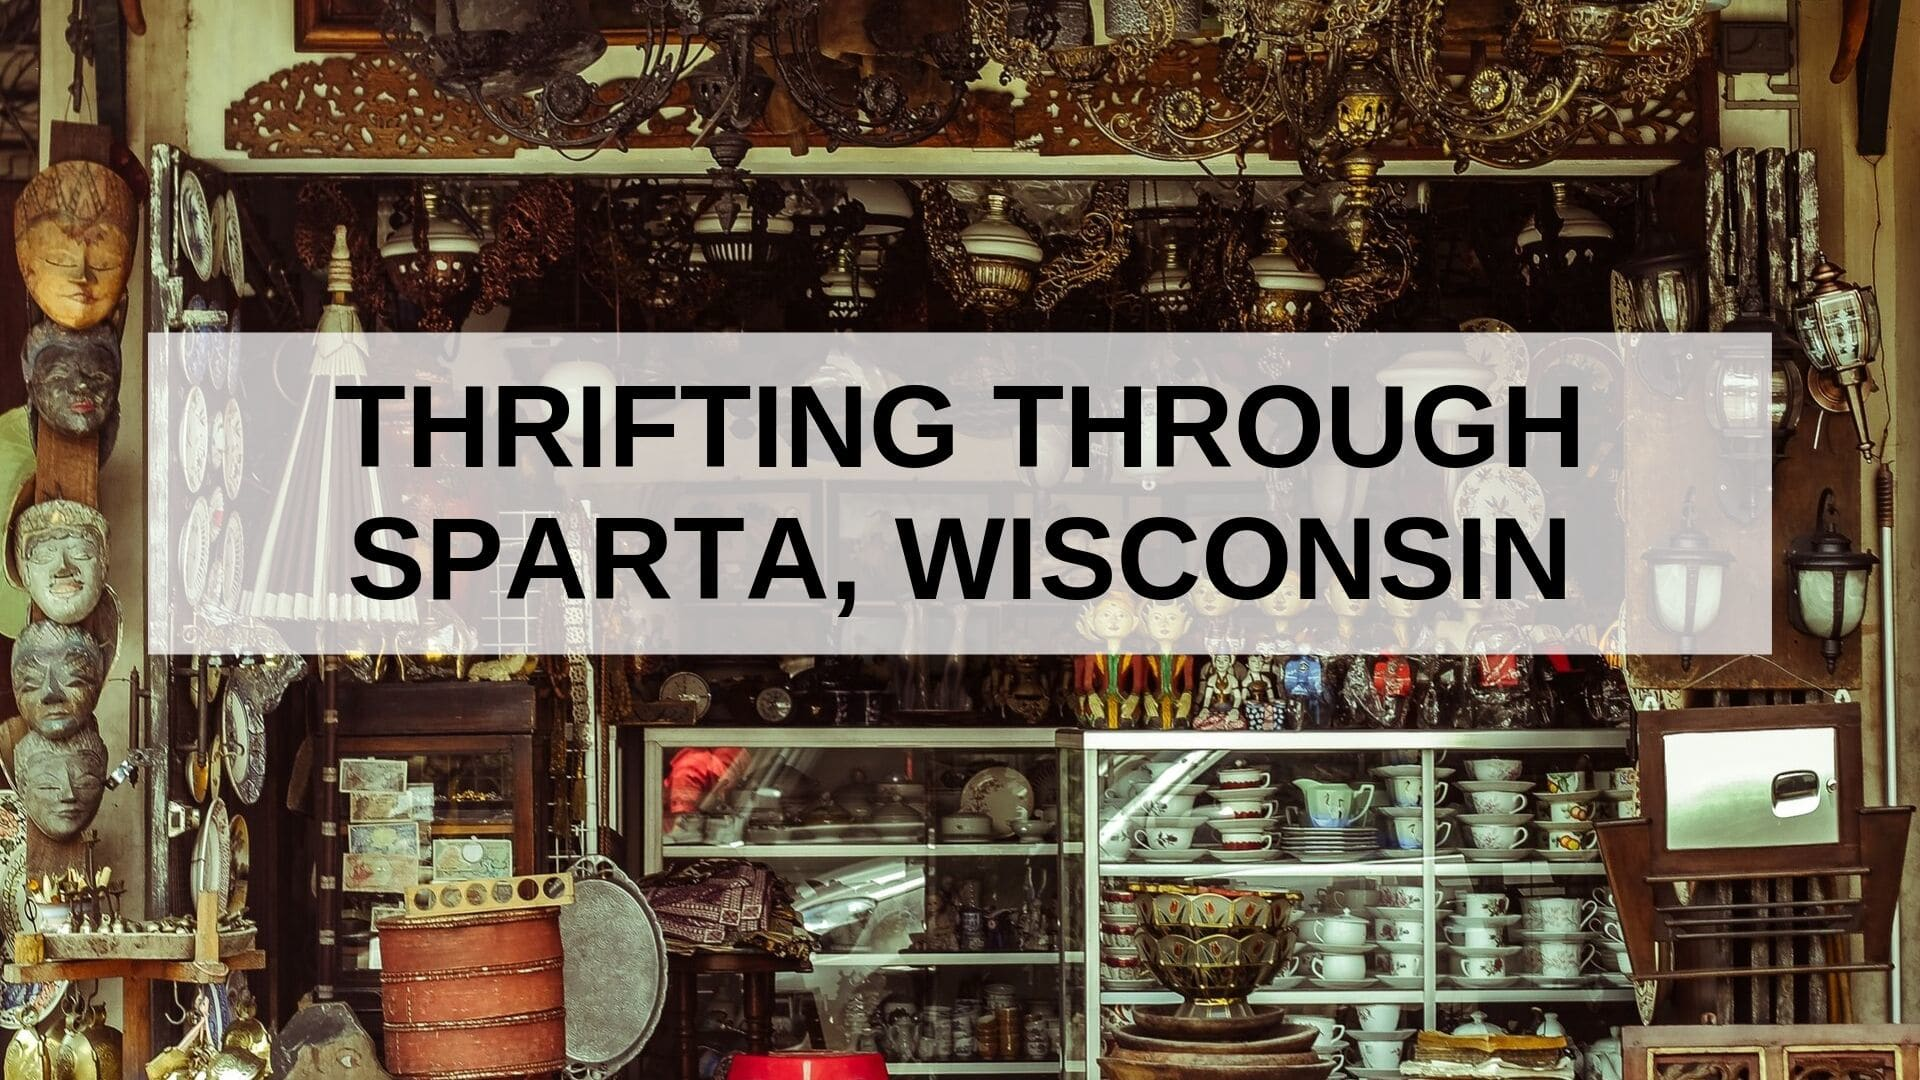 Thrifting Through Sparta, Wisconsin